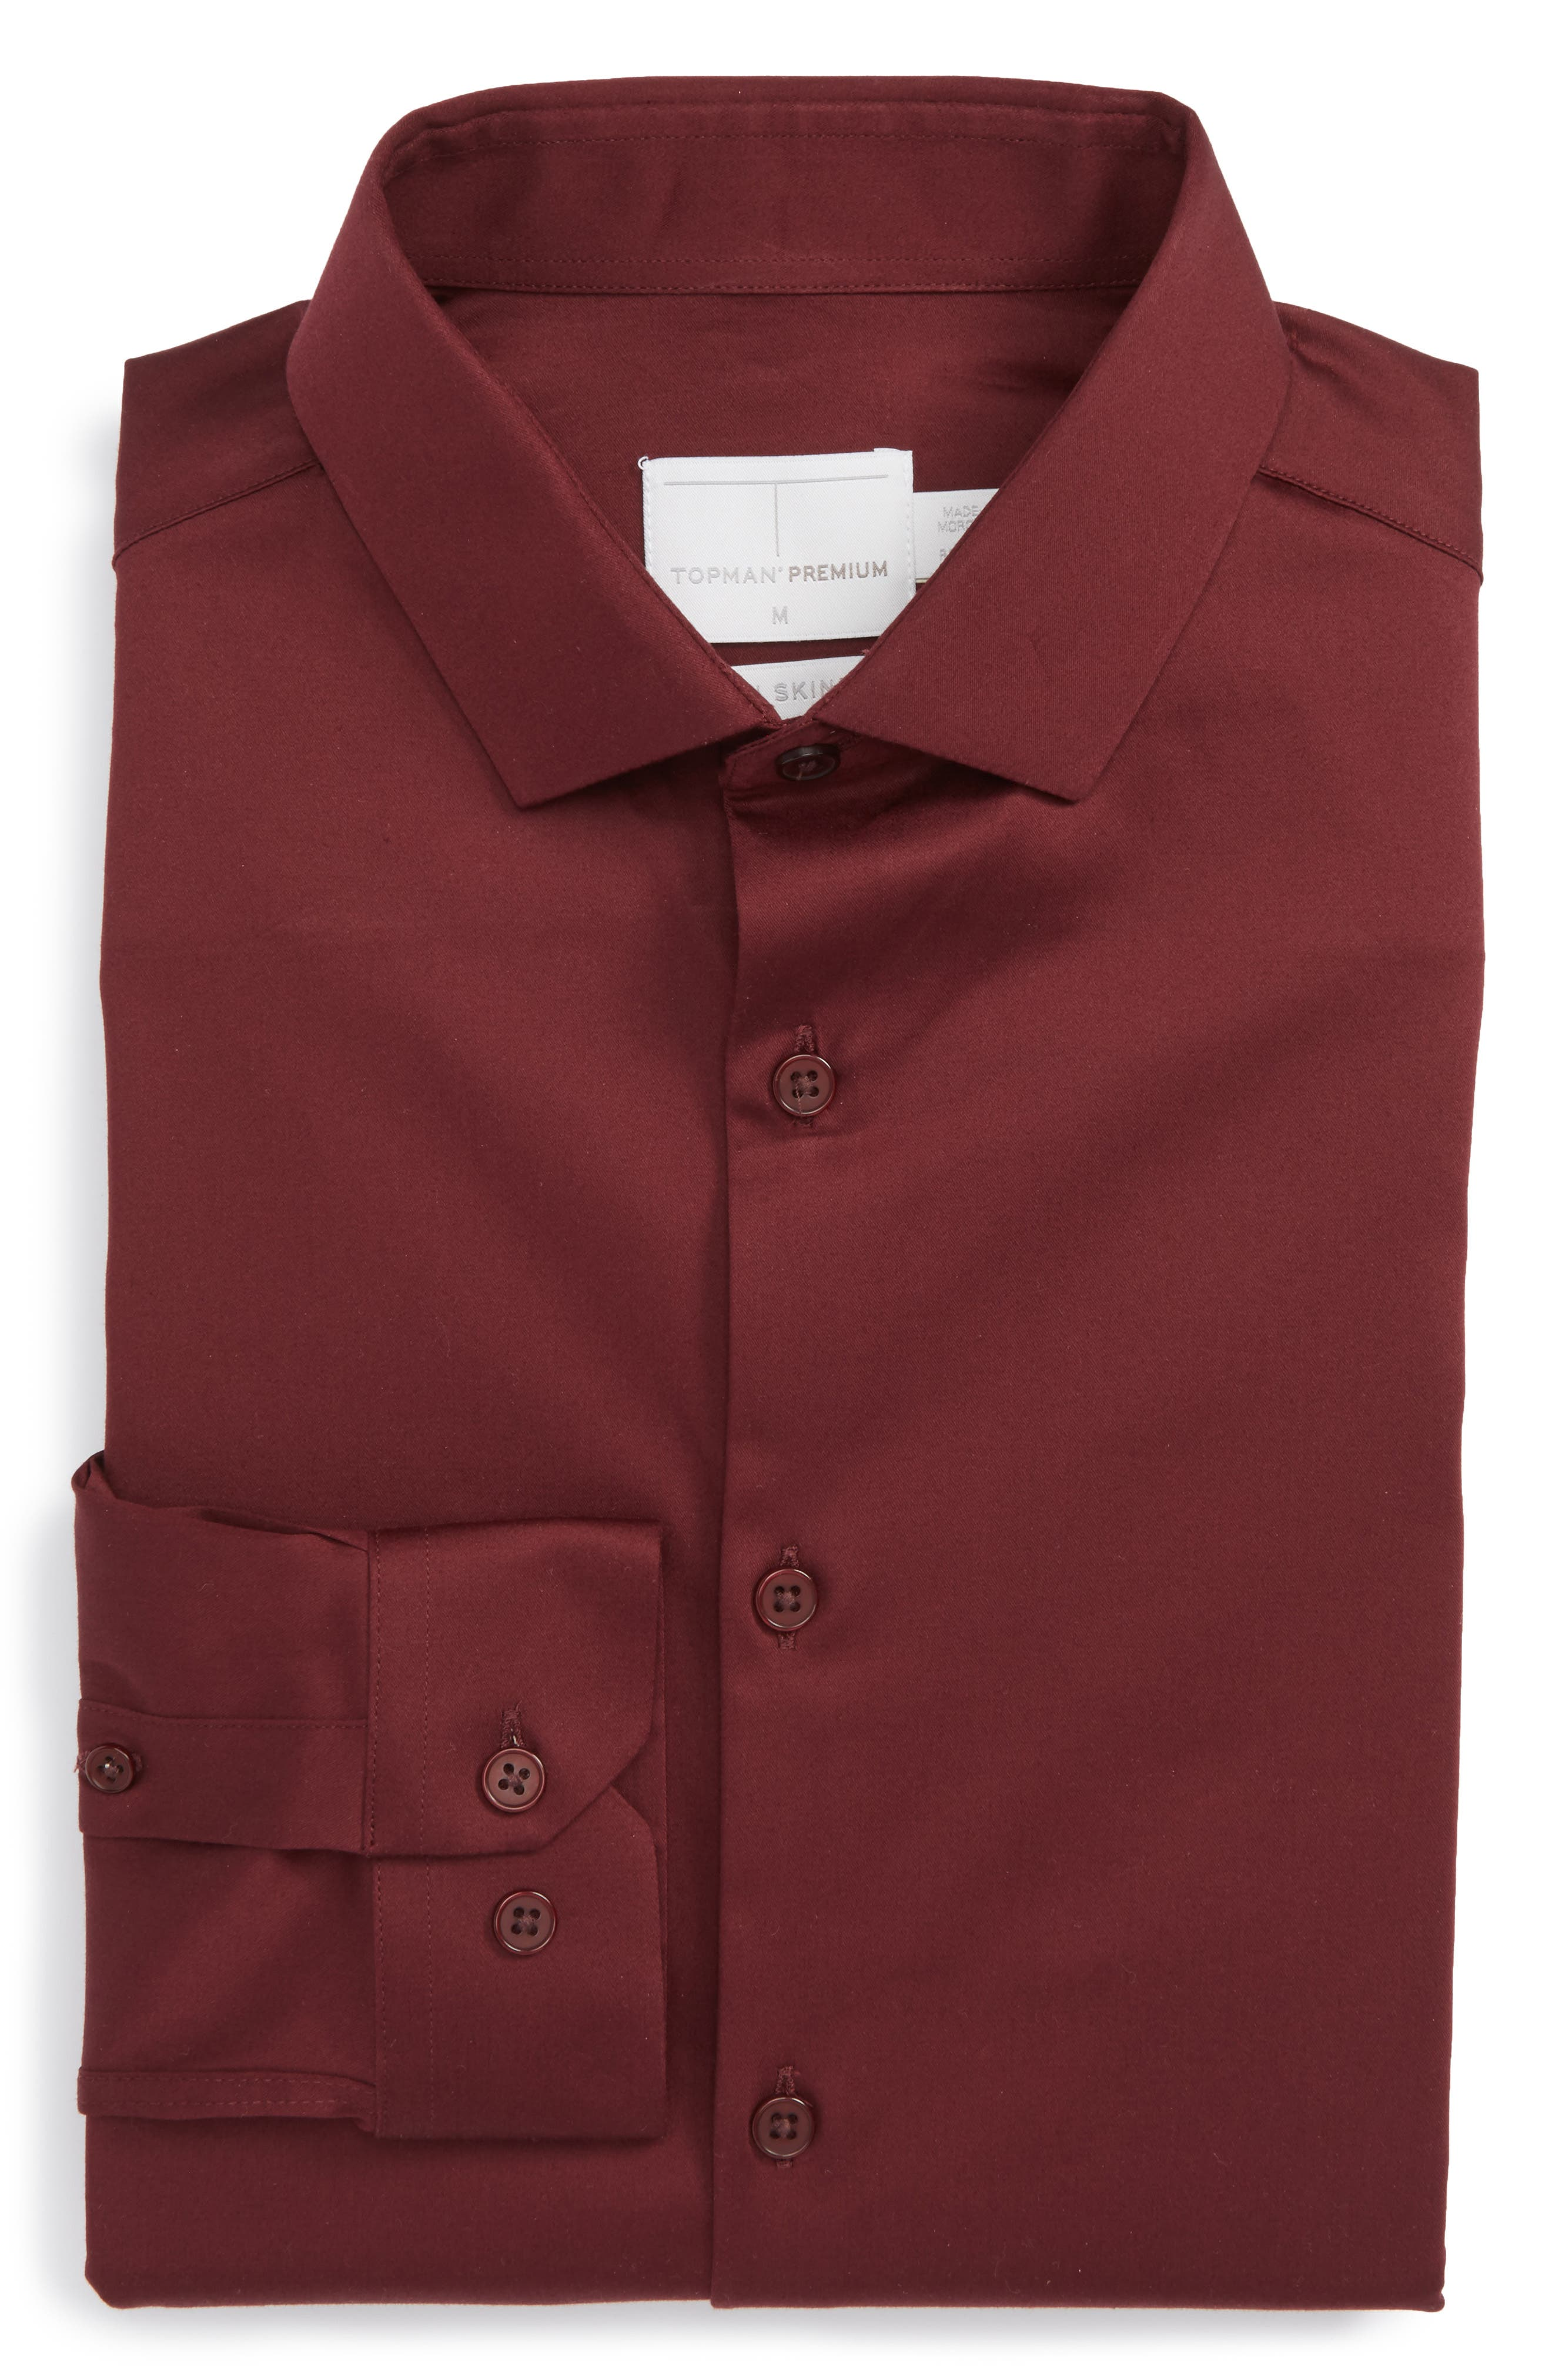 Topman Stretch Cotton Shirt